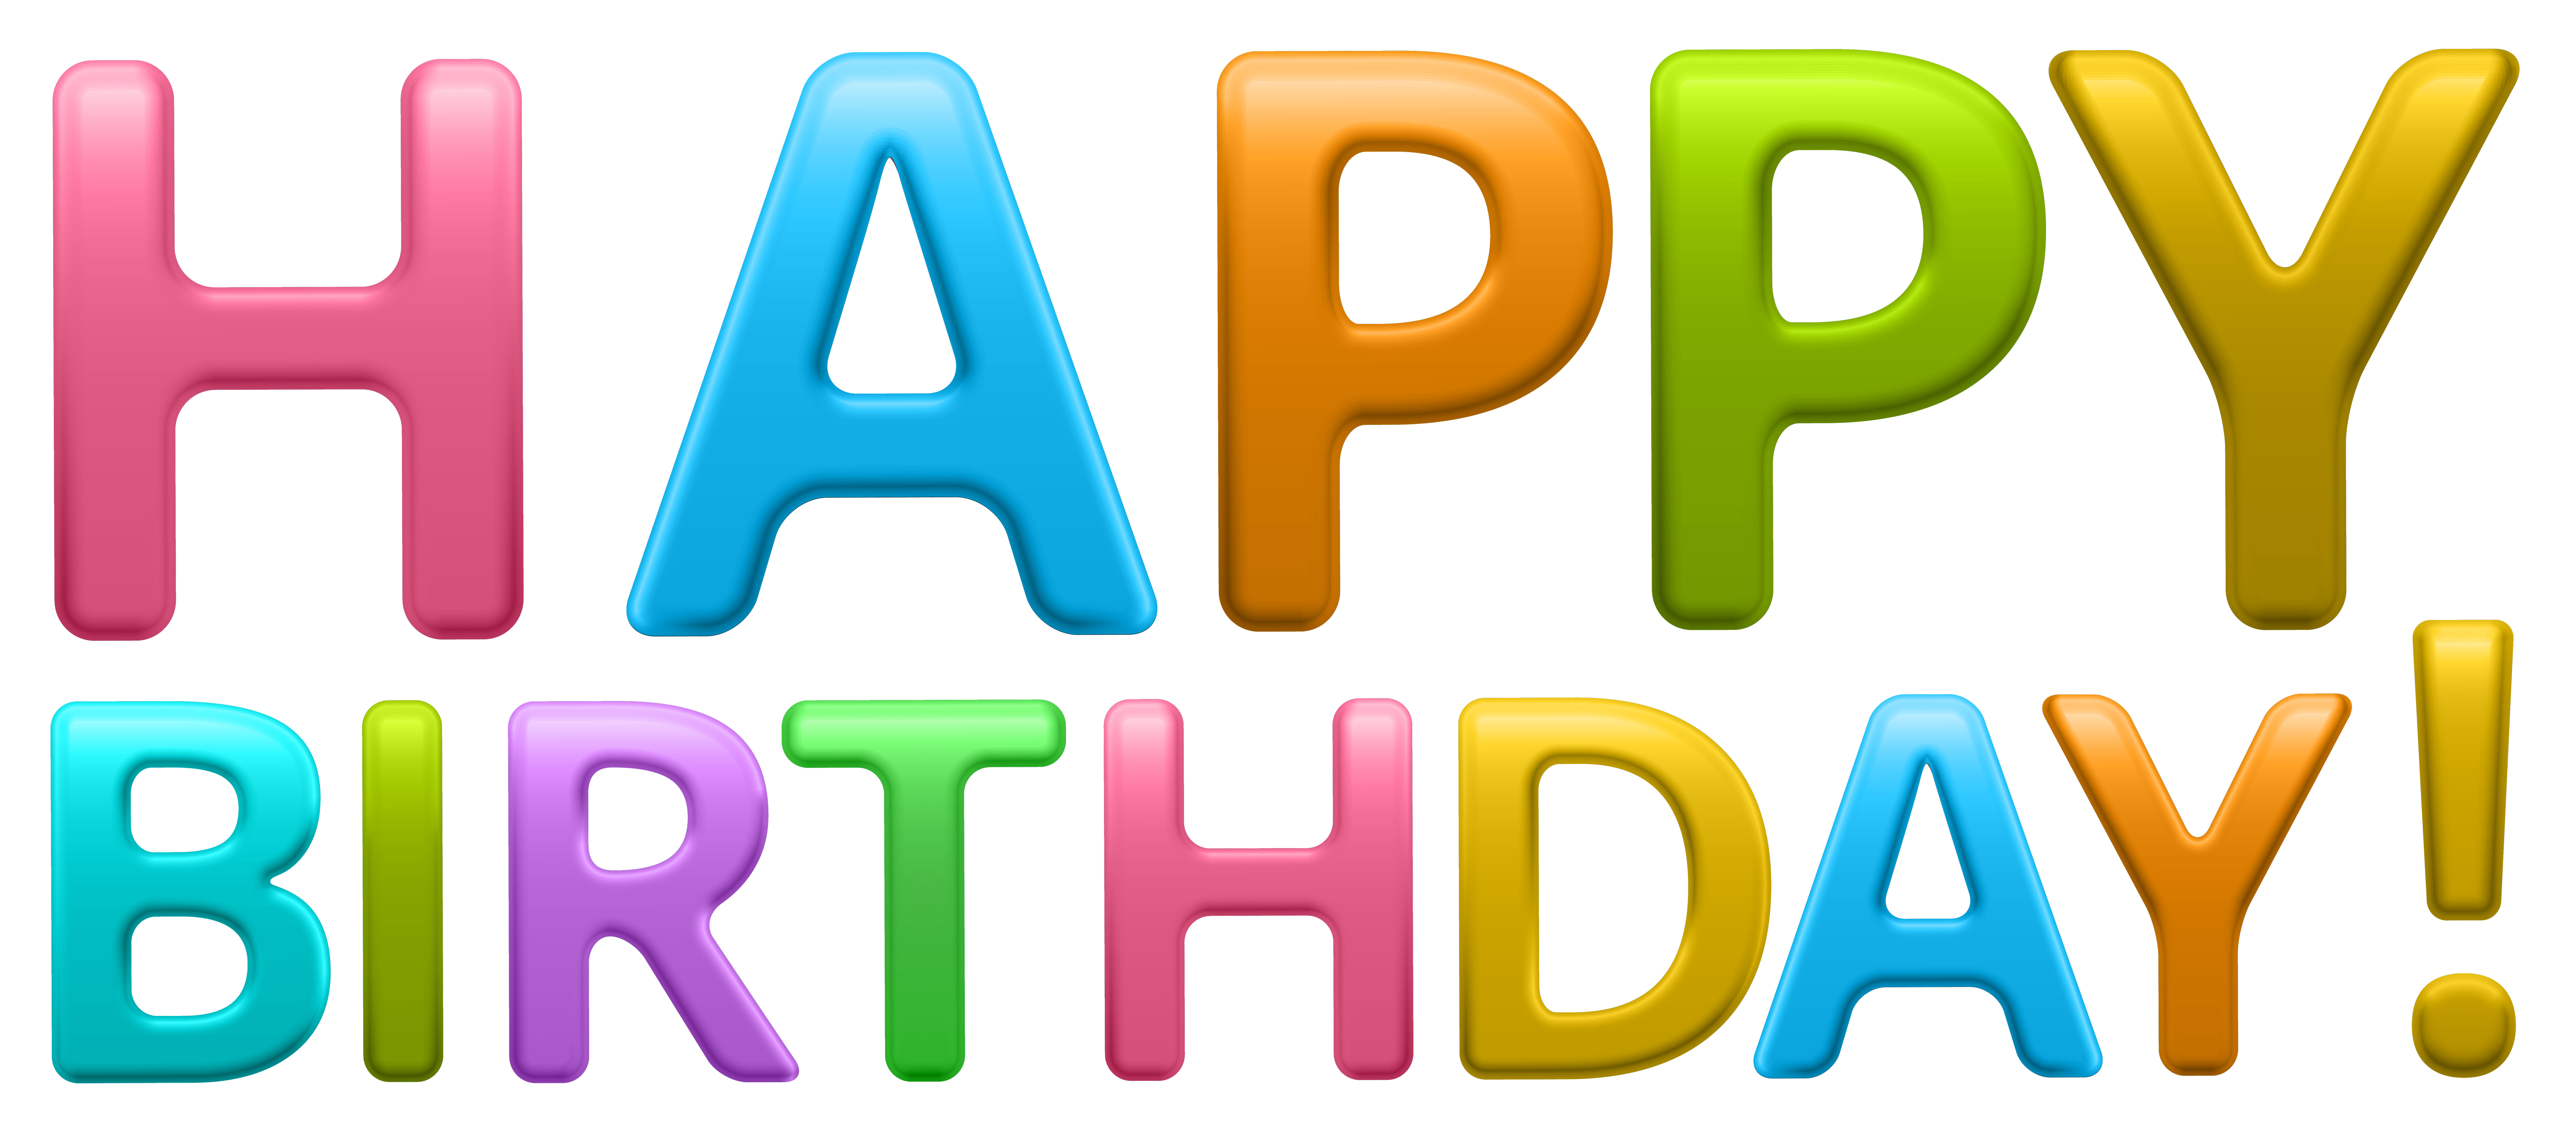 Happy birthday png transparent. Collection of free anniverse